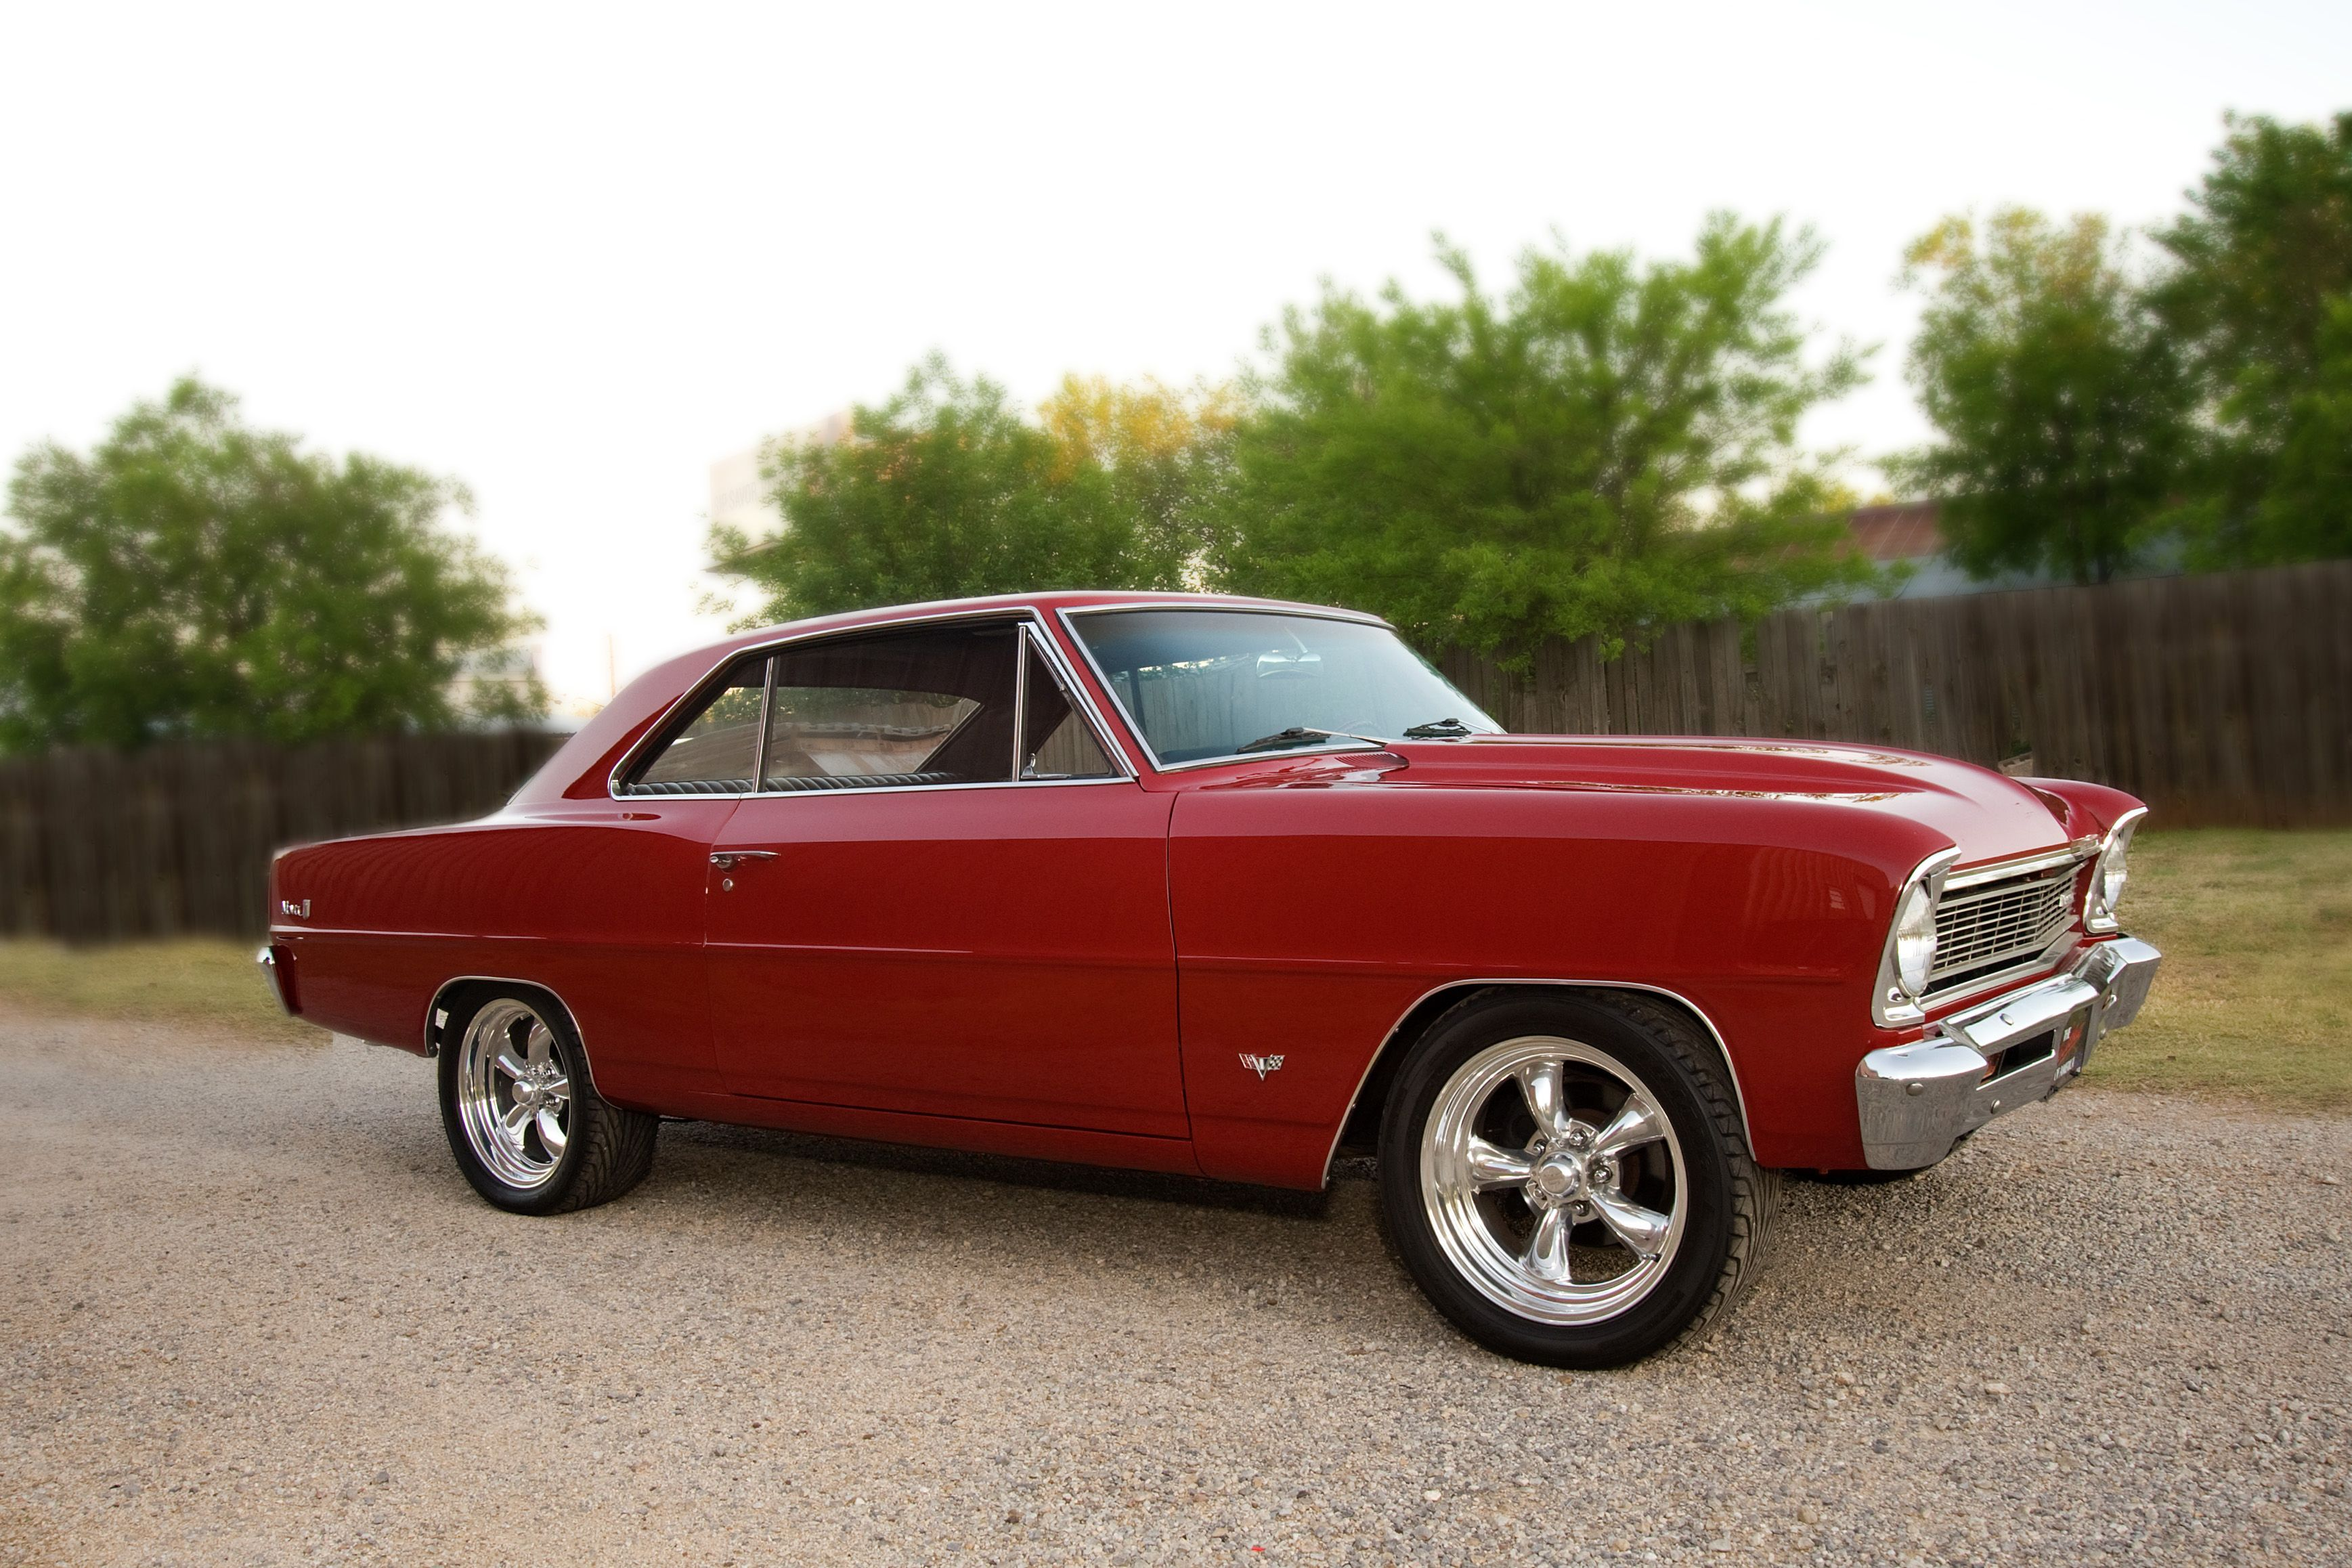 Phoenix Arizona Is The Ideal Place To Find A Classic Chevy Muscle